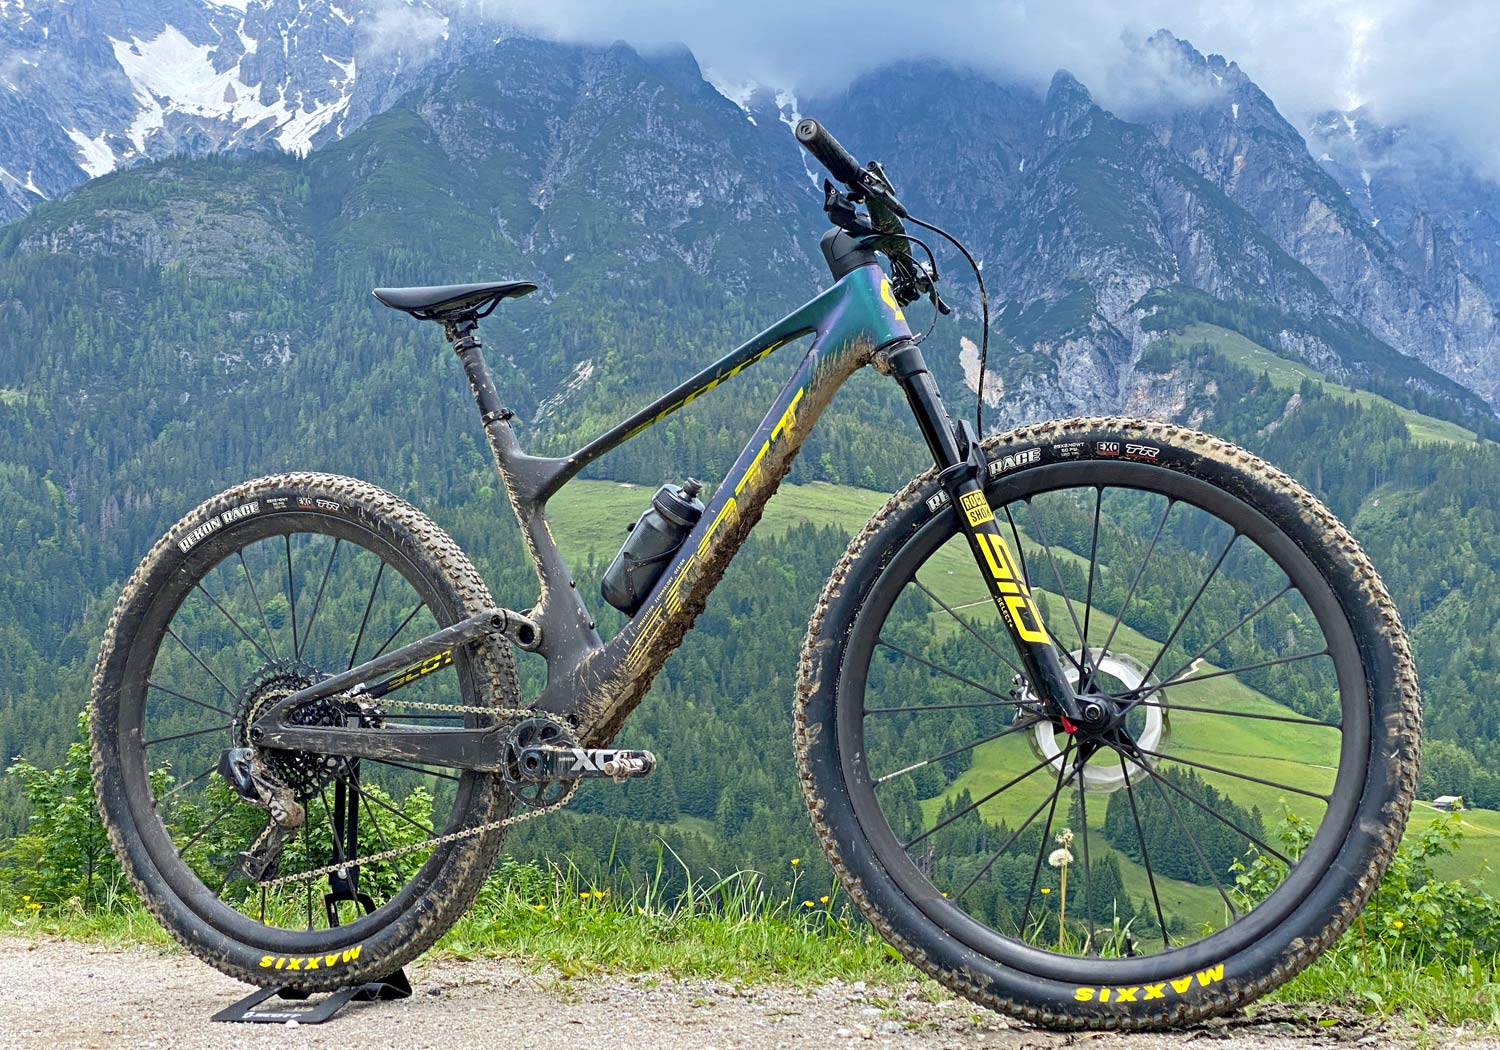 2022 Scott Spark RC & 900 XC trail mountain bikes, light fully-integrated cross-country MTB,complete